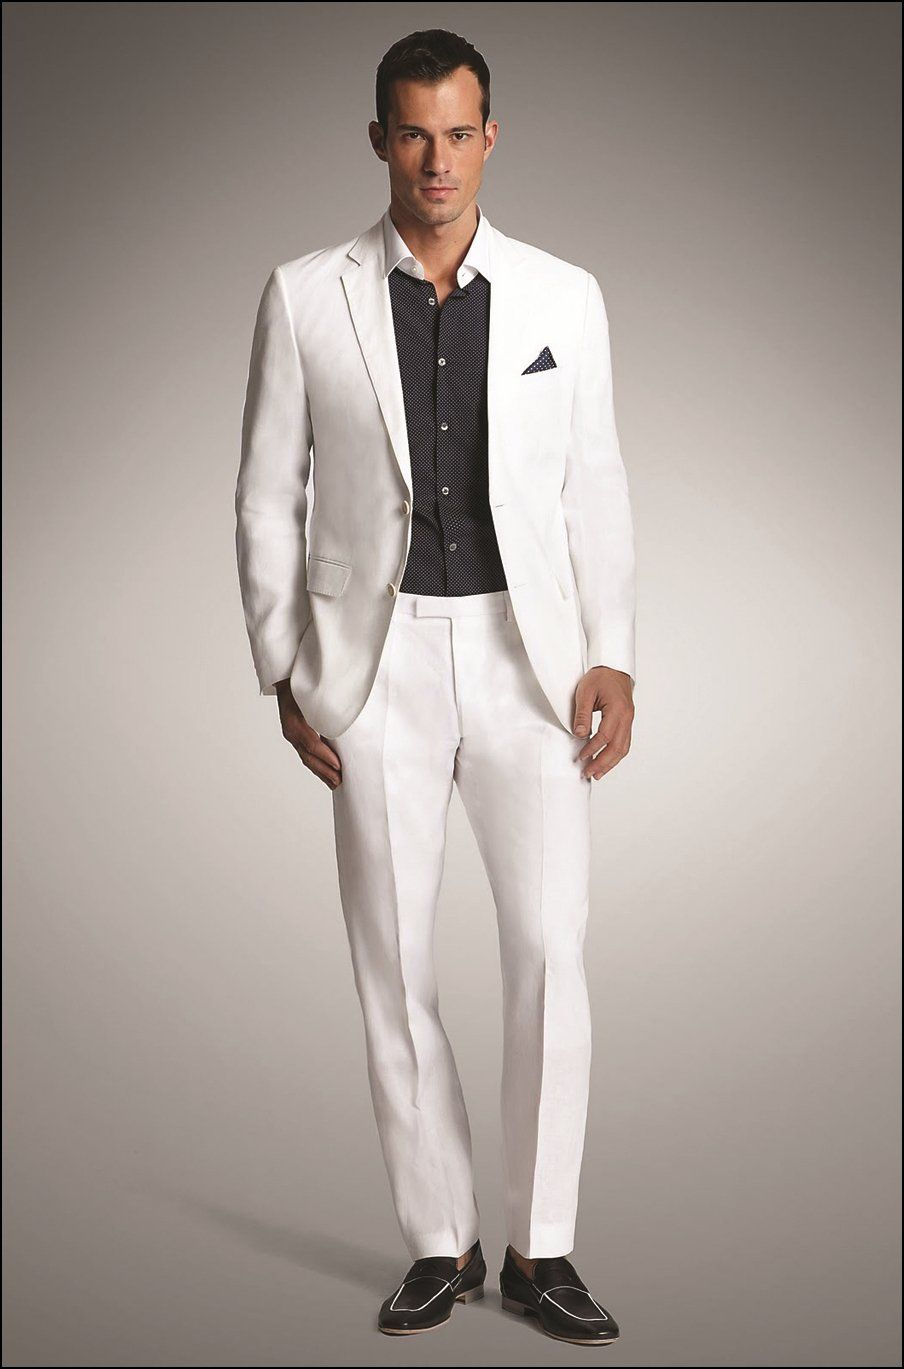 white-suits-for-men-6.jpg (904×1369) | Suits | Pinterest | Search ...